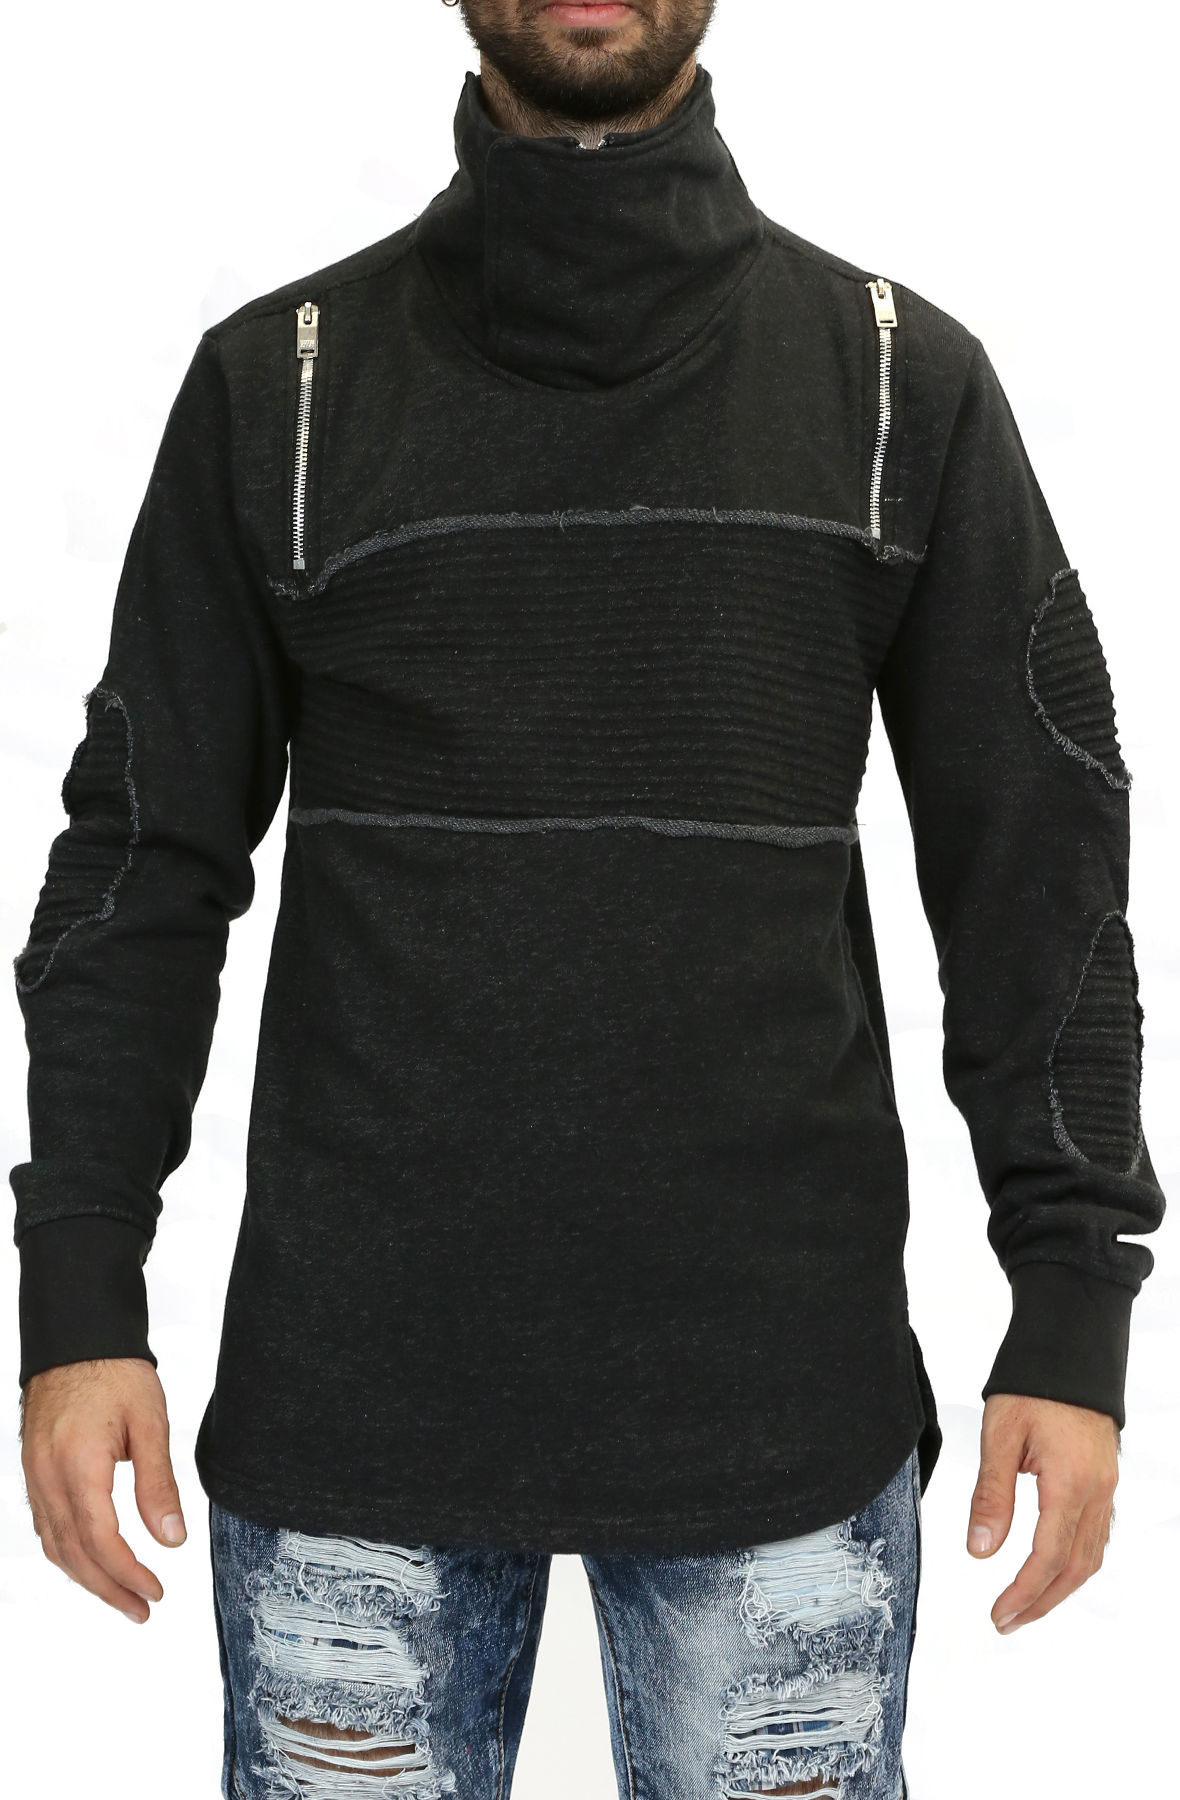 Image of Patched Ski Neck Sweater in Black